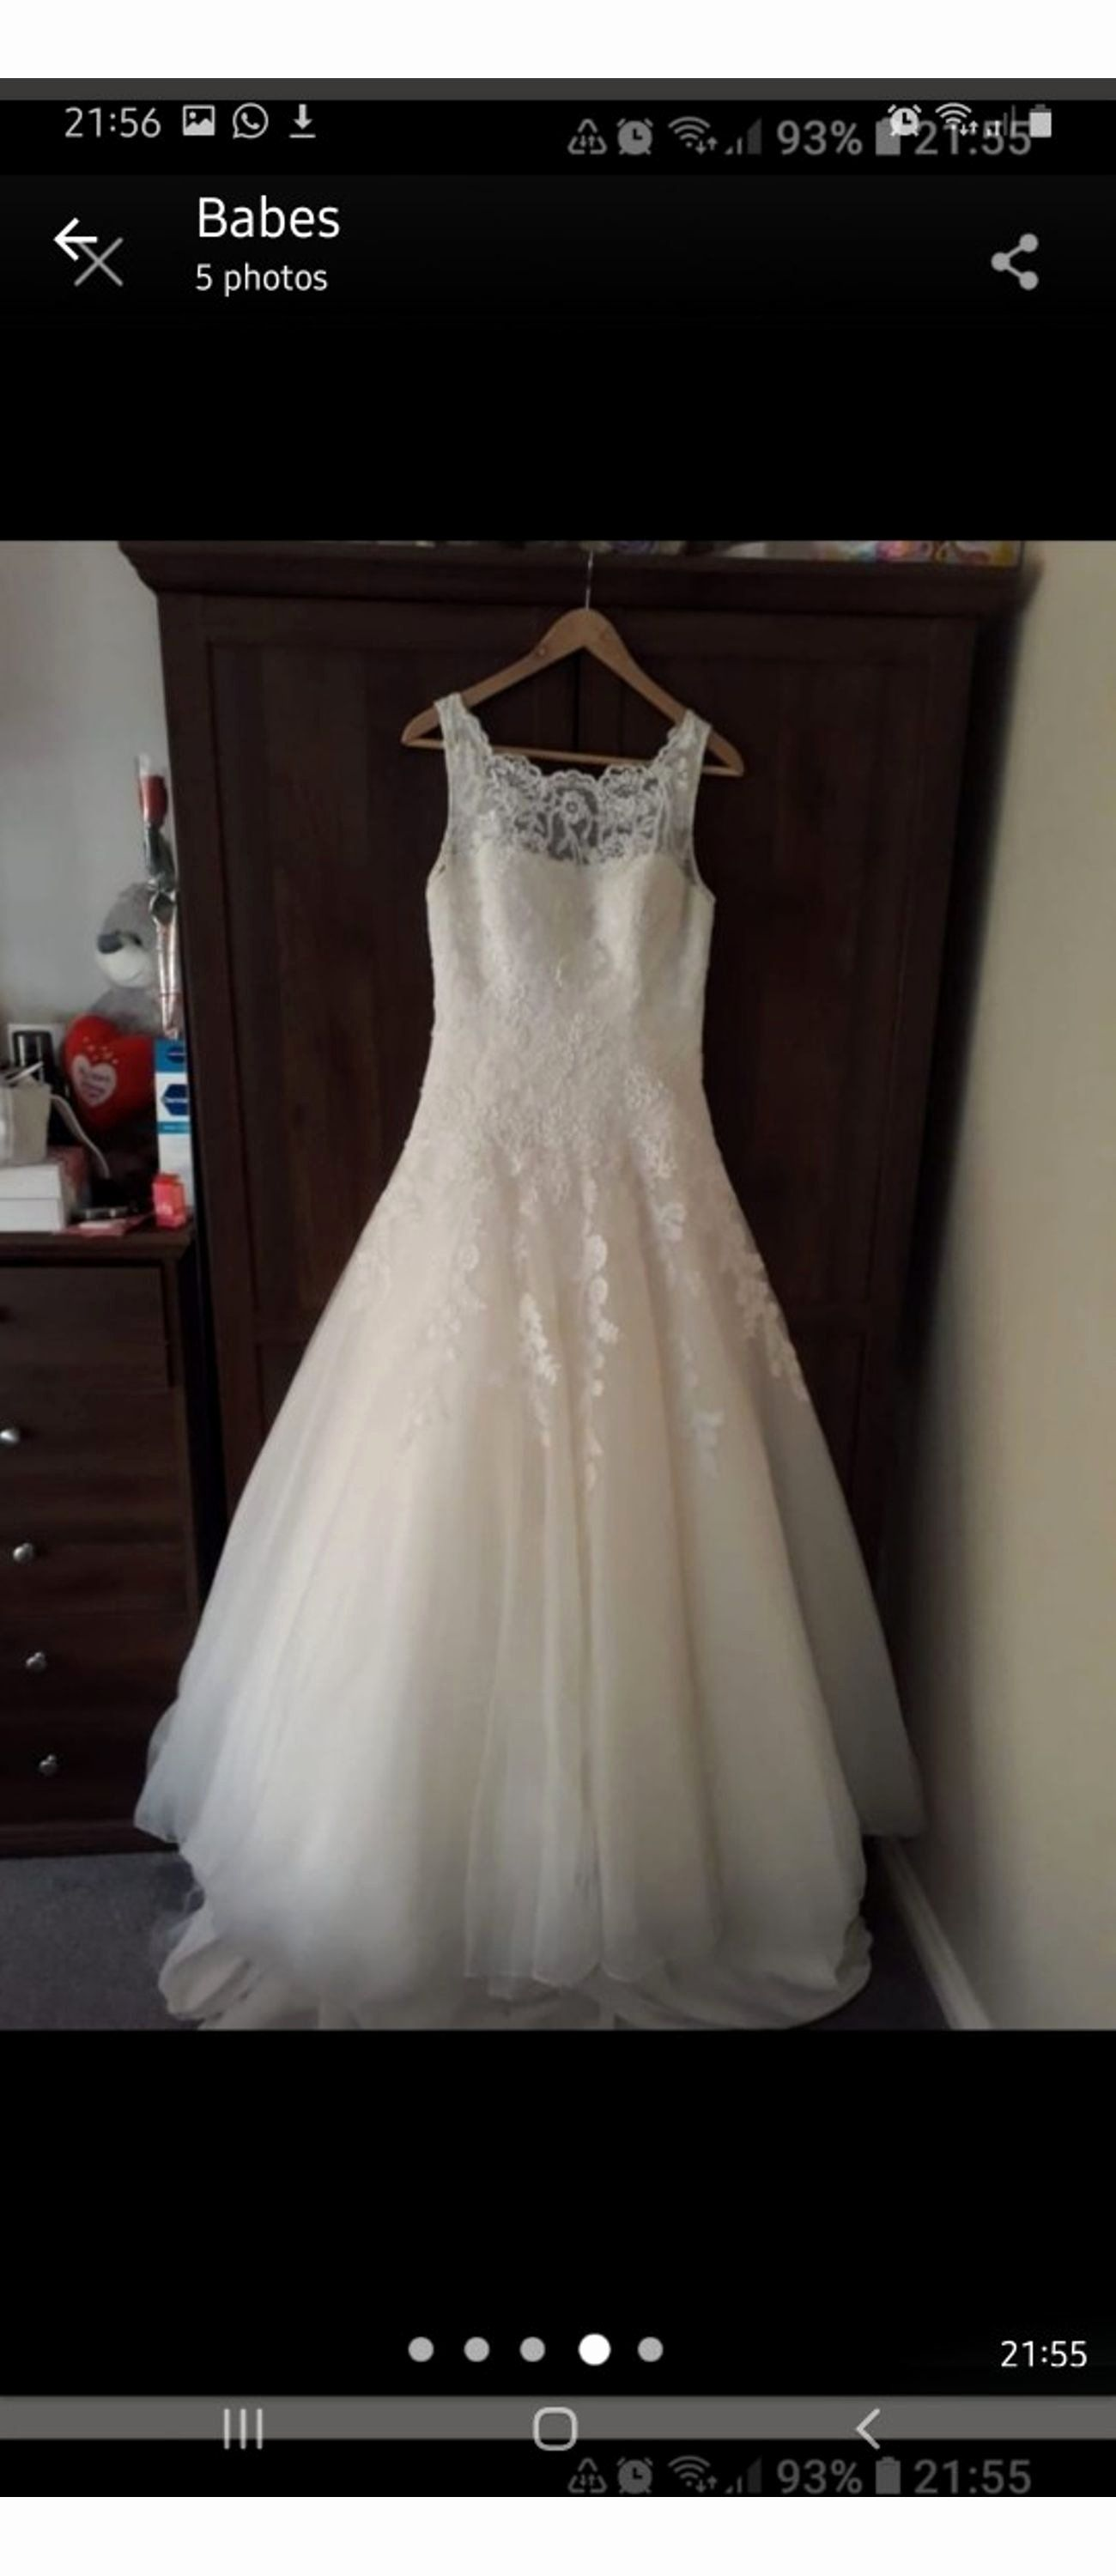 How Much Does It Cost To Dry Clean Wedding Dress Unique Justin Alexander Wedding Dress In Wolverhampton For 300 00 In 2020 Clean Wedding Dress Wedding Dresses Dresses